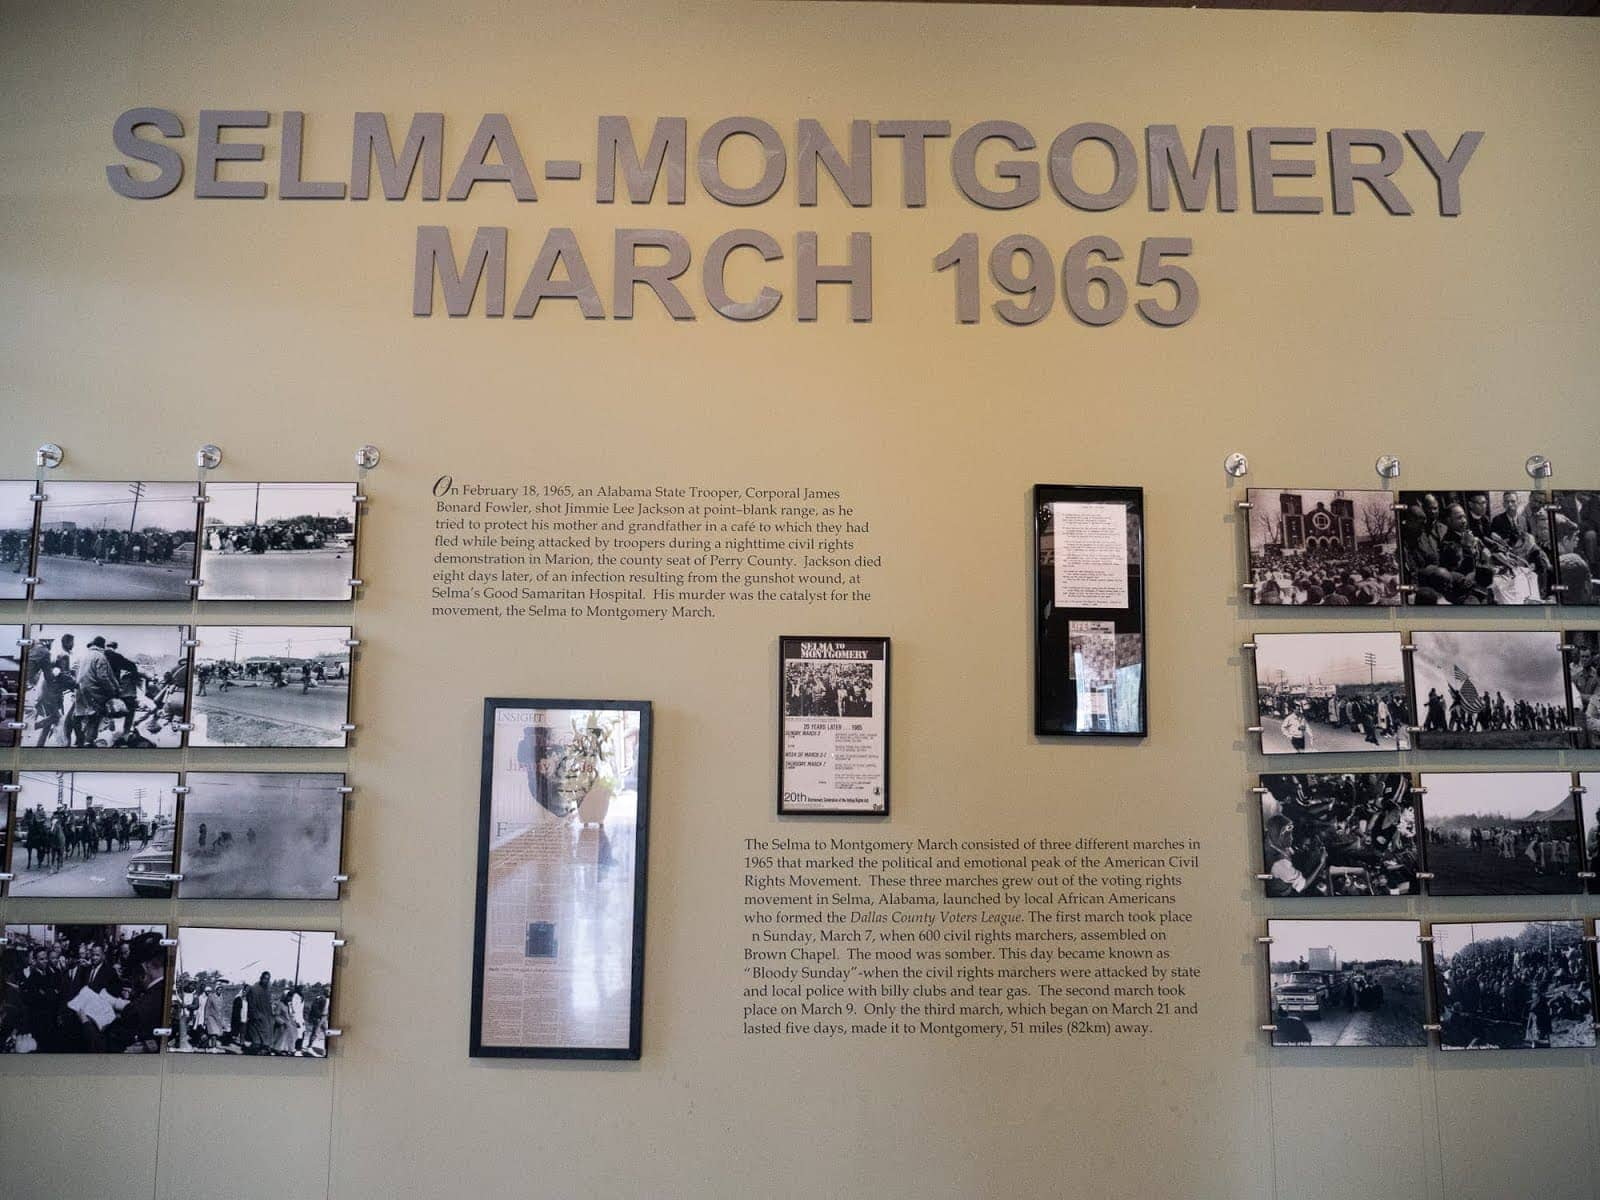 National Civil Rights Museum Alabama by Laurence Norah